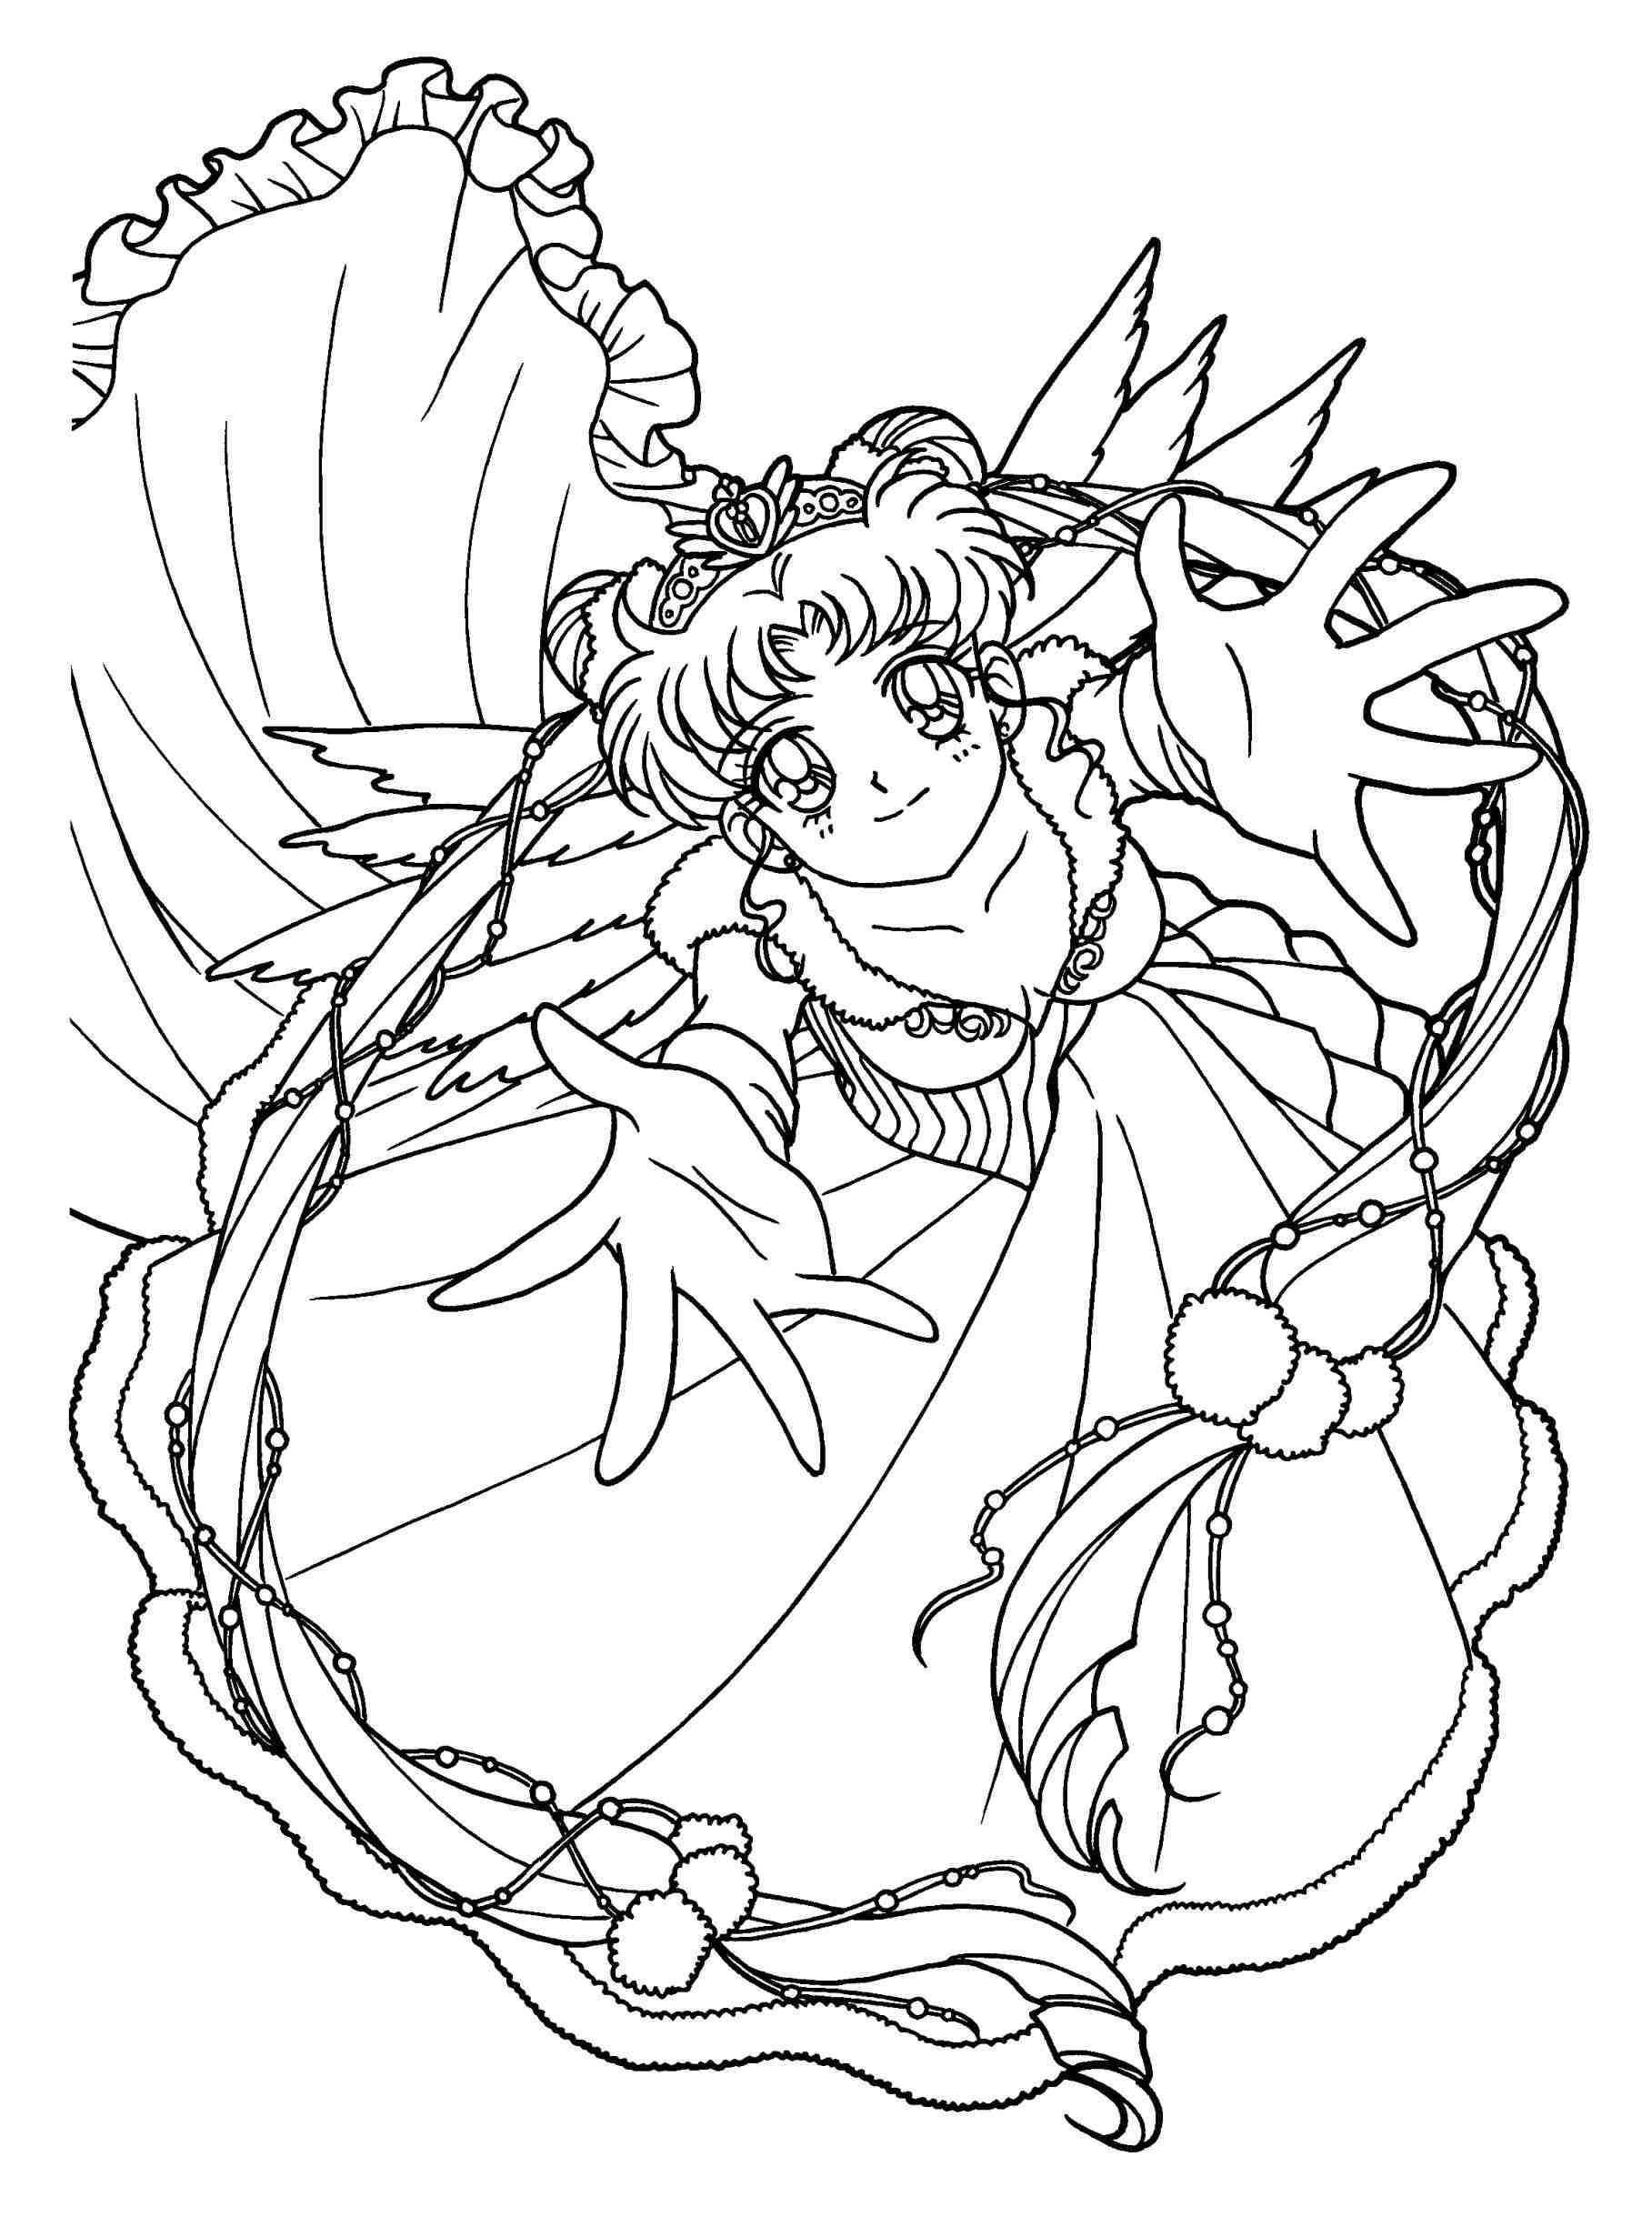 queen serenity coloring pages | The best free Serenity coloring page images. Download from ...